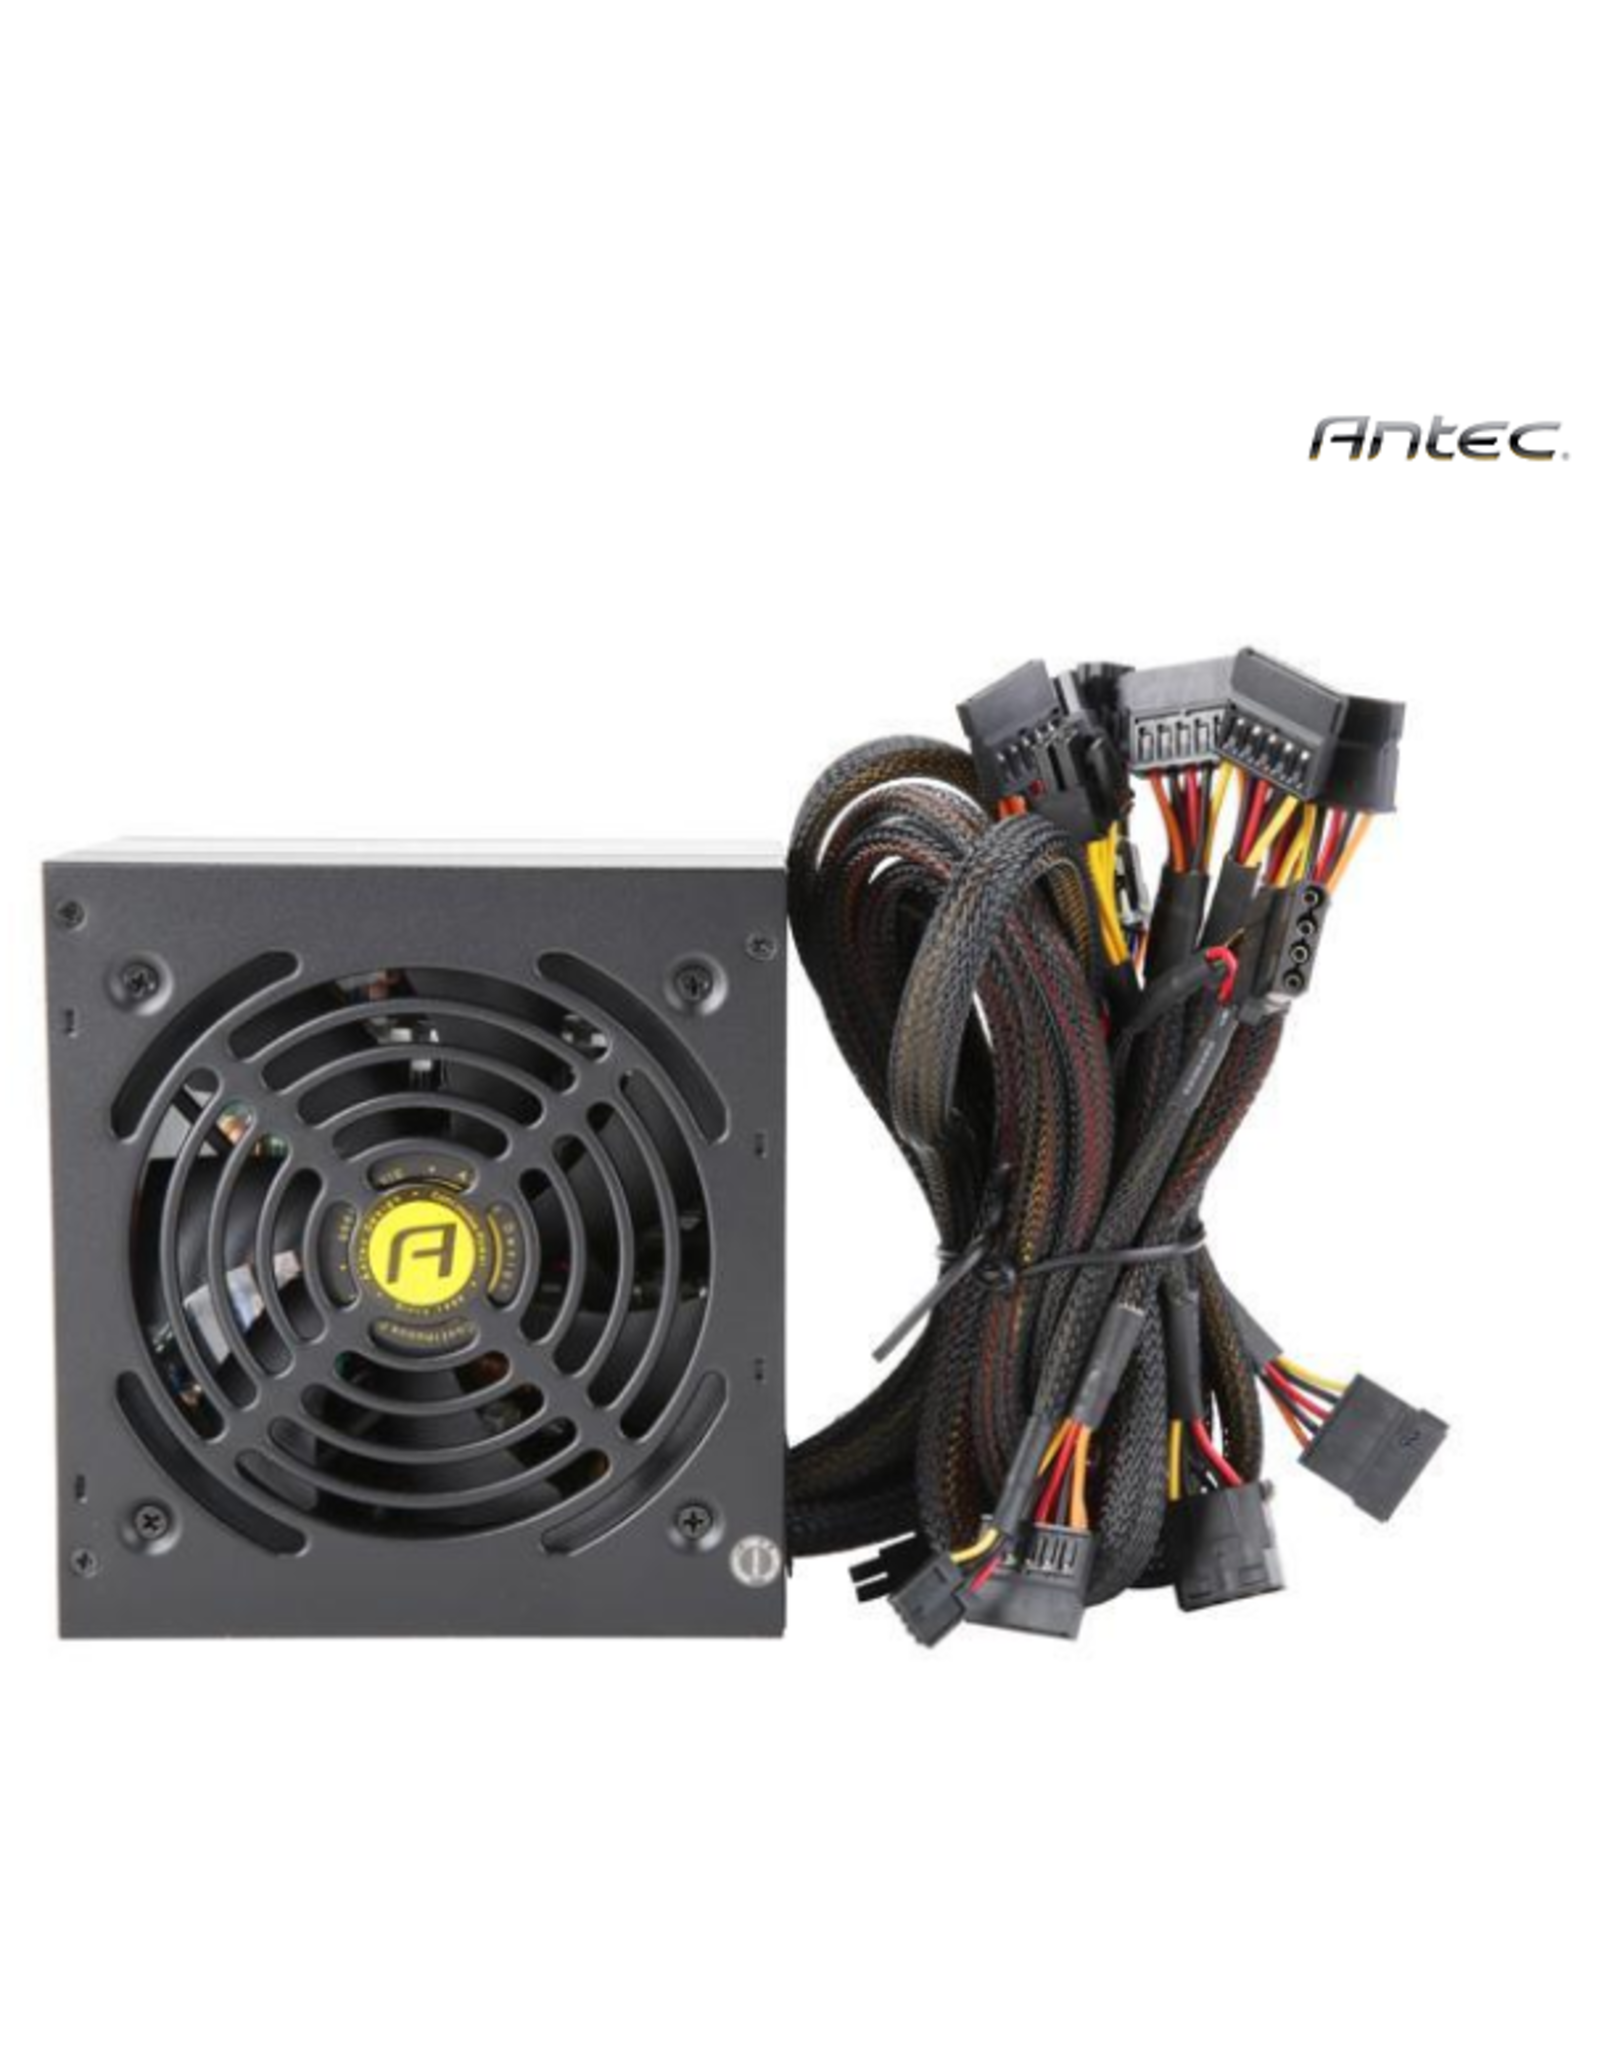 Antec Value Power Series VP500 Plus, 500W Non-Modular, 80 PLUS Certified, Thermal Manager, CircuitShield Protection, 120 mm Silent Fan with 3-Year Warranty